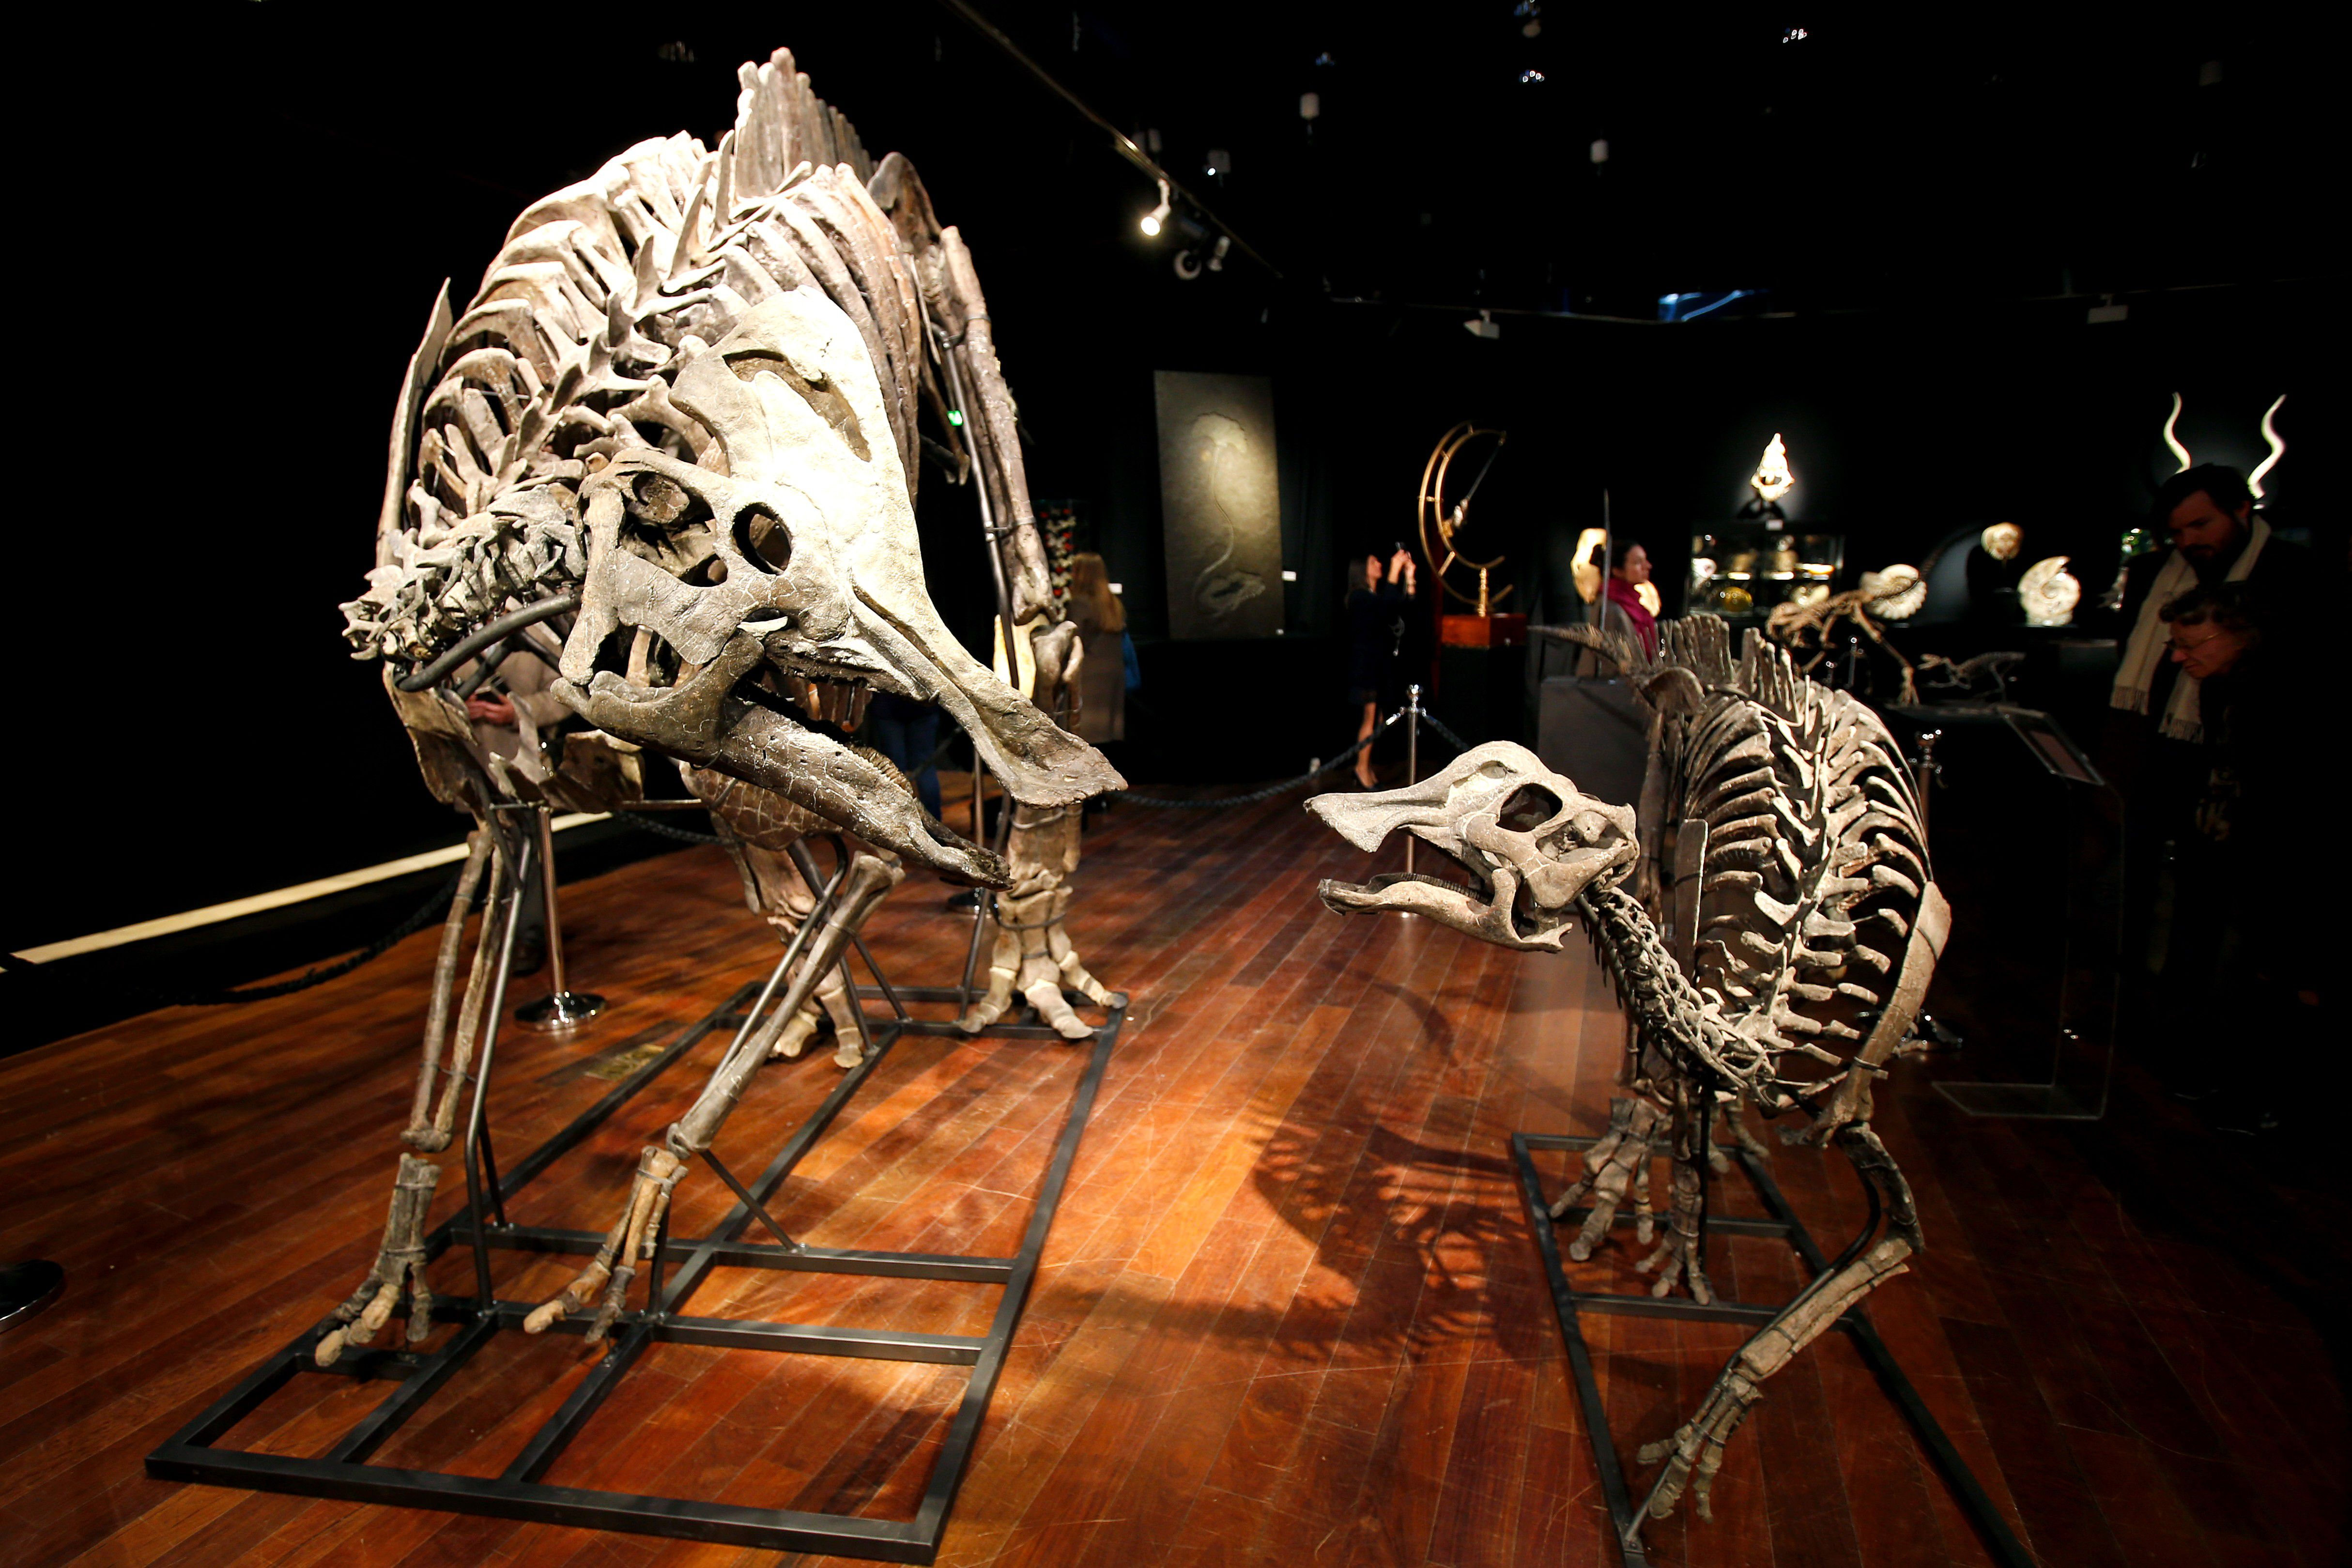 The skeletons of two duck-billed dinosaurs, Hypacrosaurus altispinosus